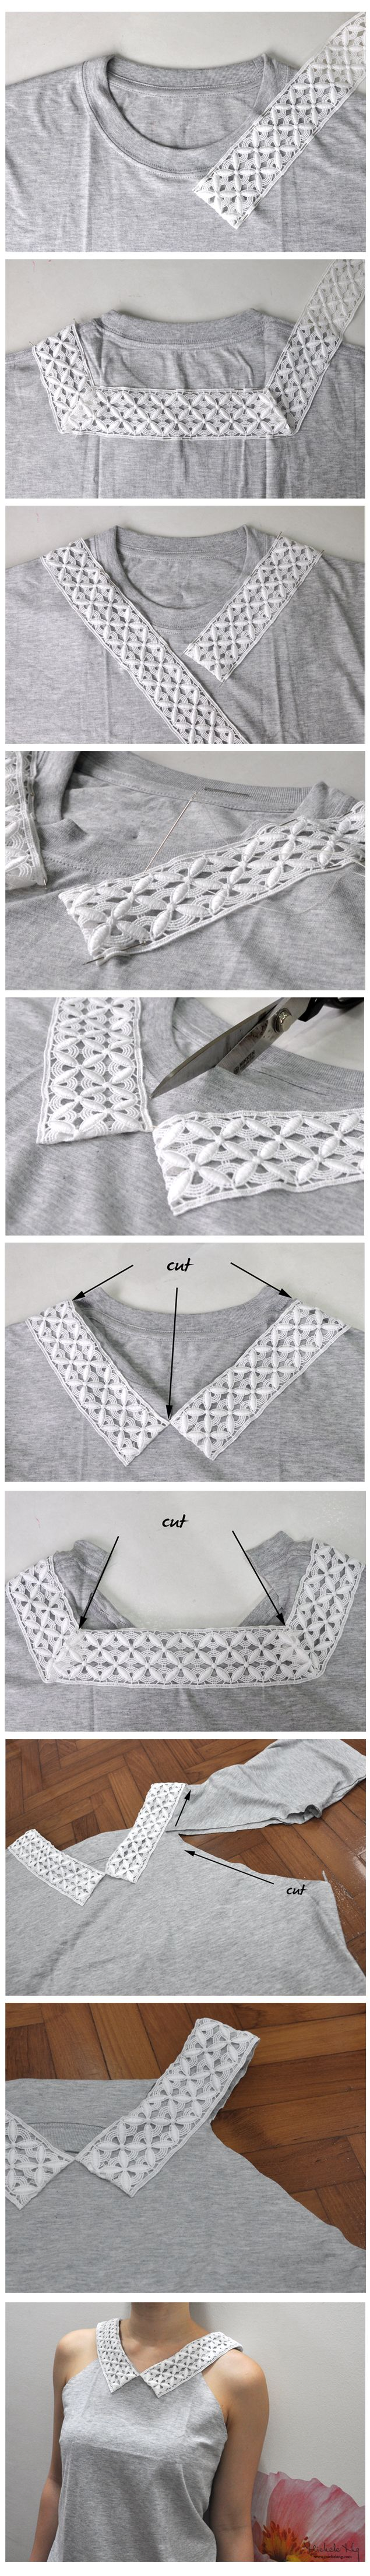 how to upcycle a plain old tee shirt tutorial. *Sorry for the entire tutorial being posted - it's how the blog pinned this photo.